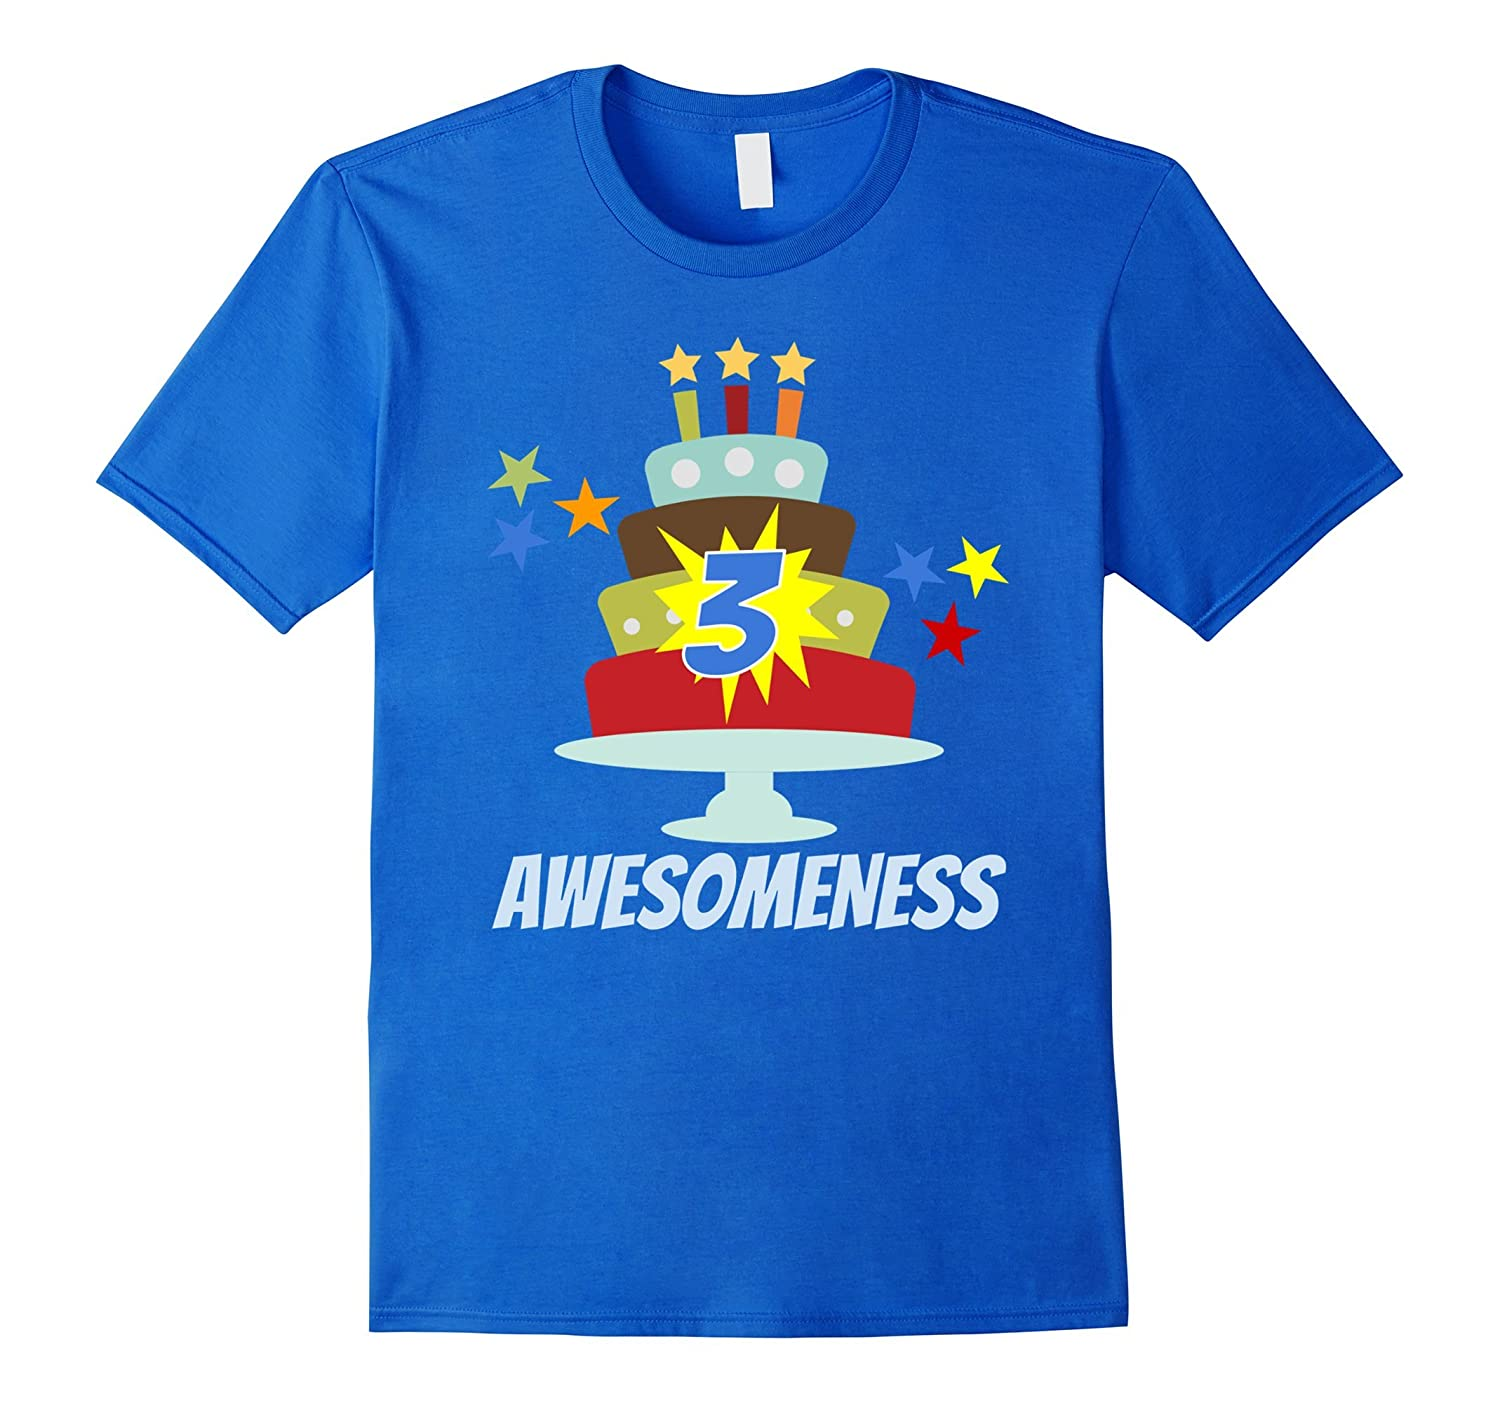 3 Year Old Awesomeness Birthday T Shirt For Boys Or Girls RT